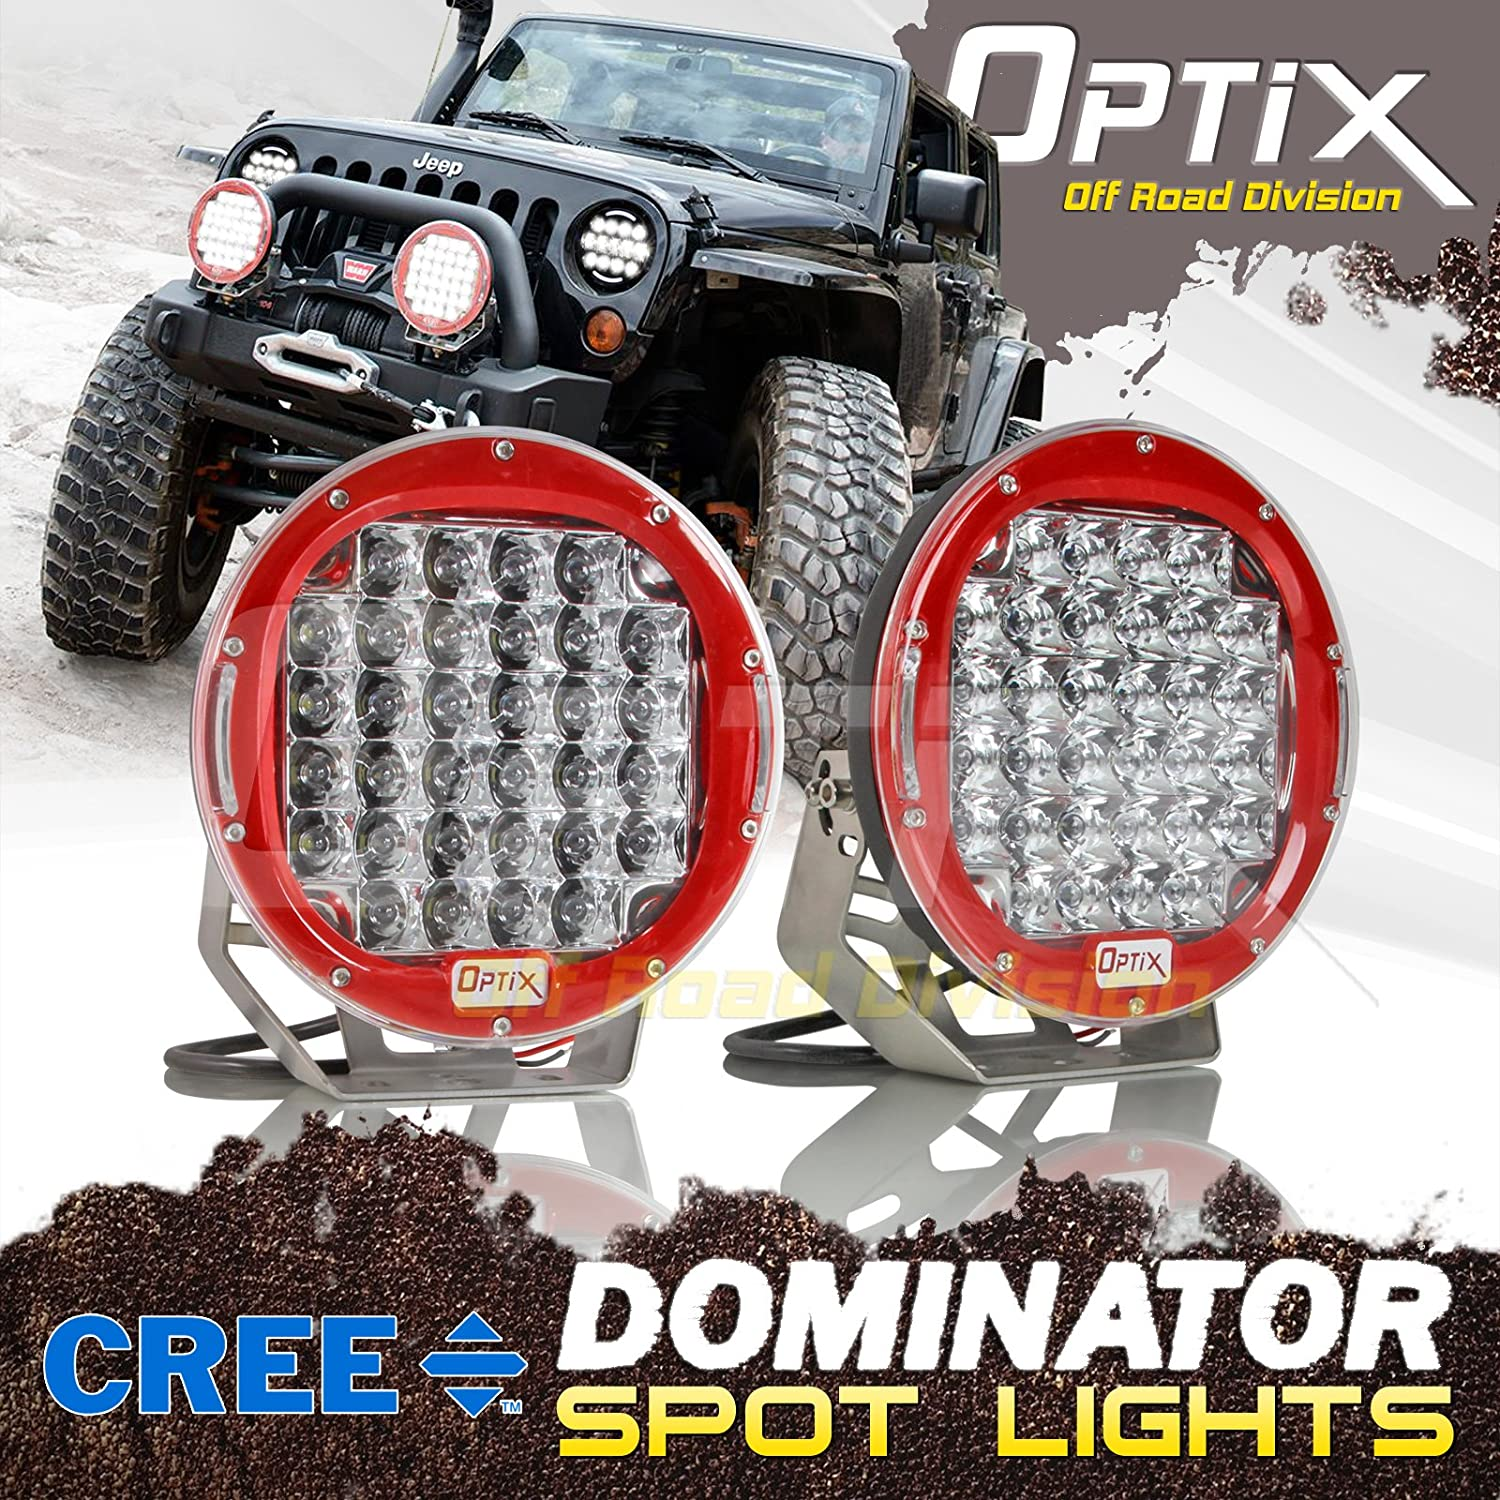 Optix 2pcs 192W 16400LM 9' Round CREE LED Work Light Driving Spot Light High Intensity Auxiliary Light Bar Off-Road Jeep Truck SUV ATV UTV Roof Bumper Boat Third Gear Performance